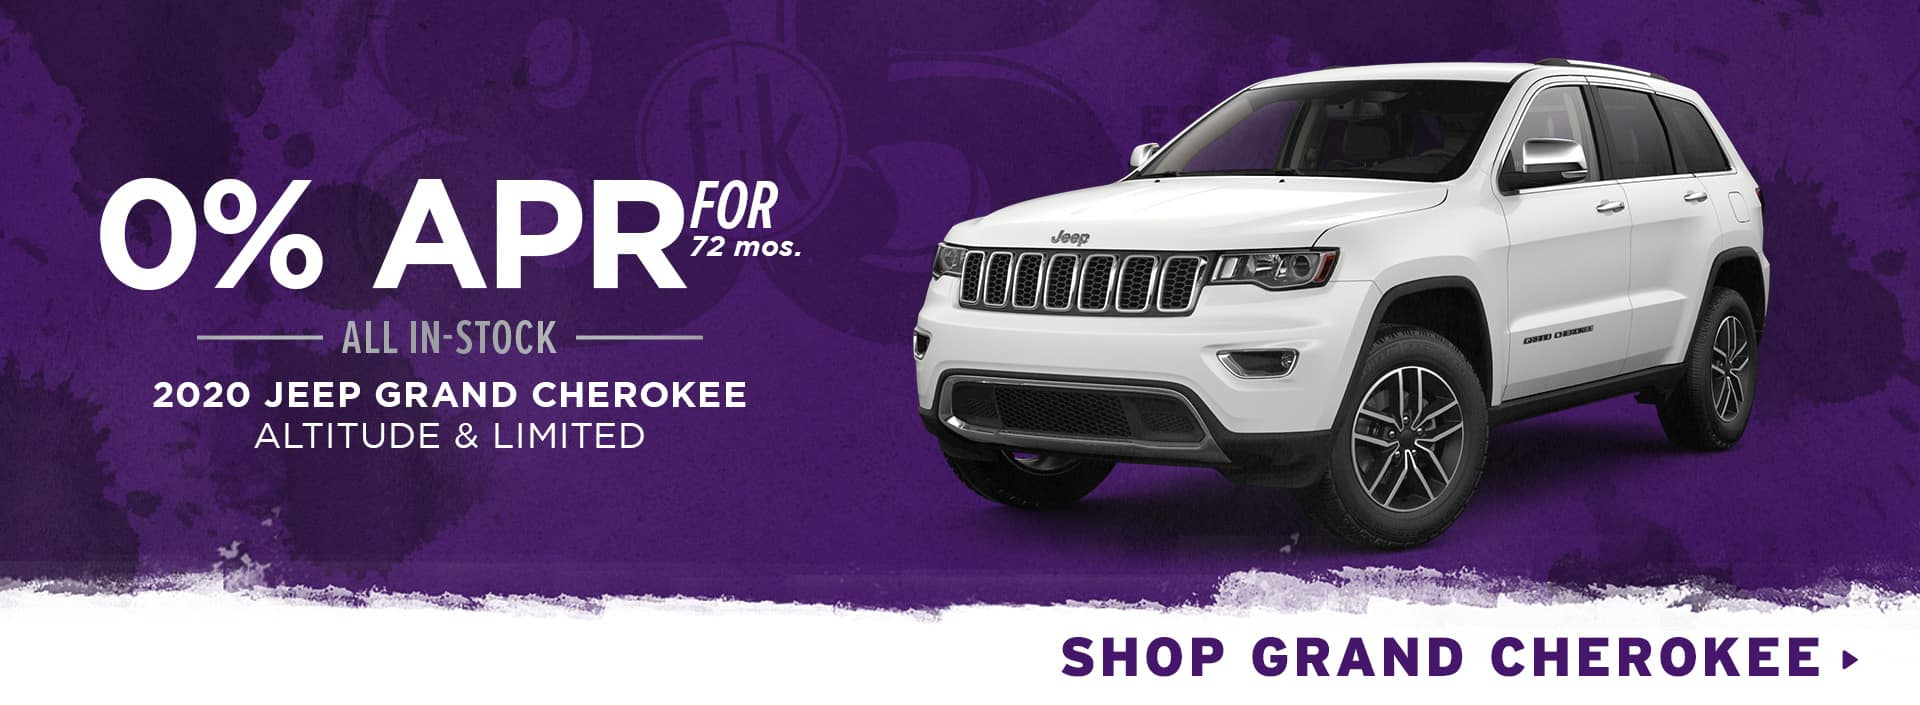 0% for 72 mos. All In-Stock 2020 Jeep Grand Cherokee Altitude & Limited